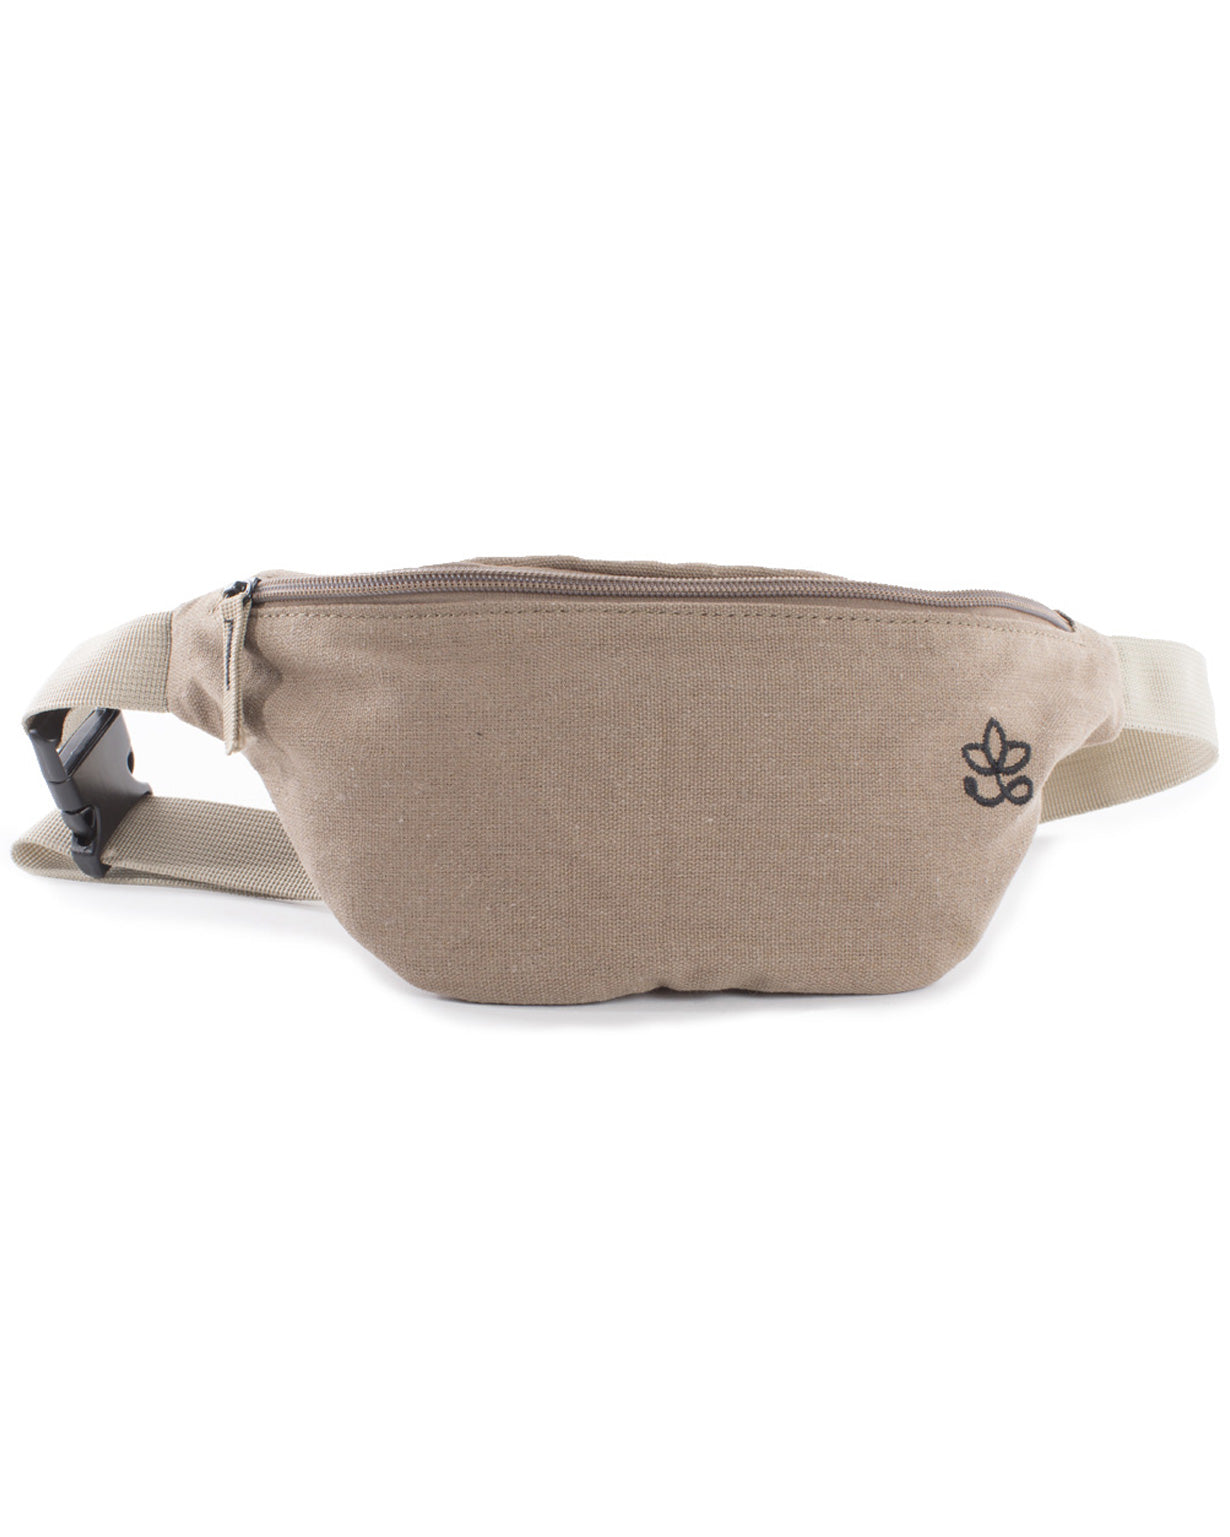 Hip Bag Khaki